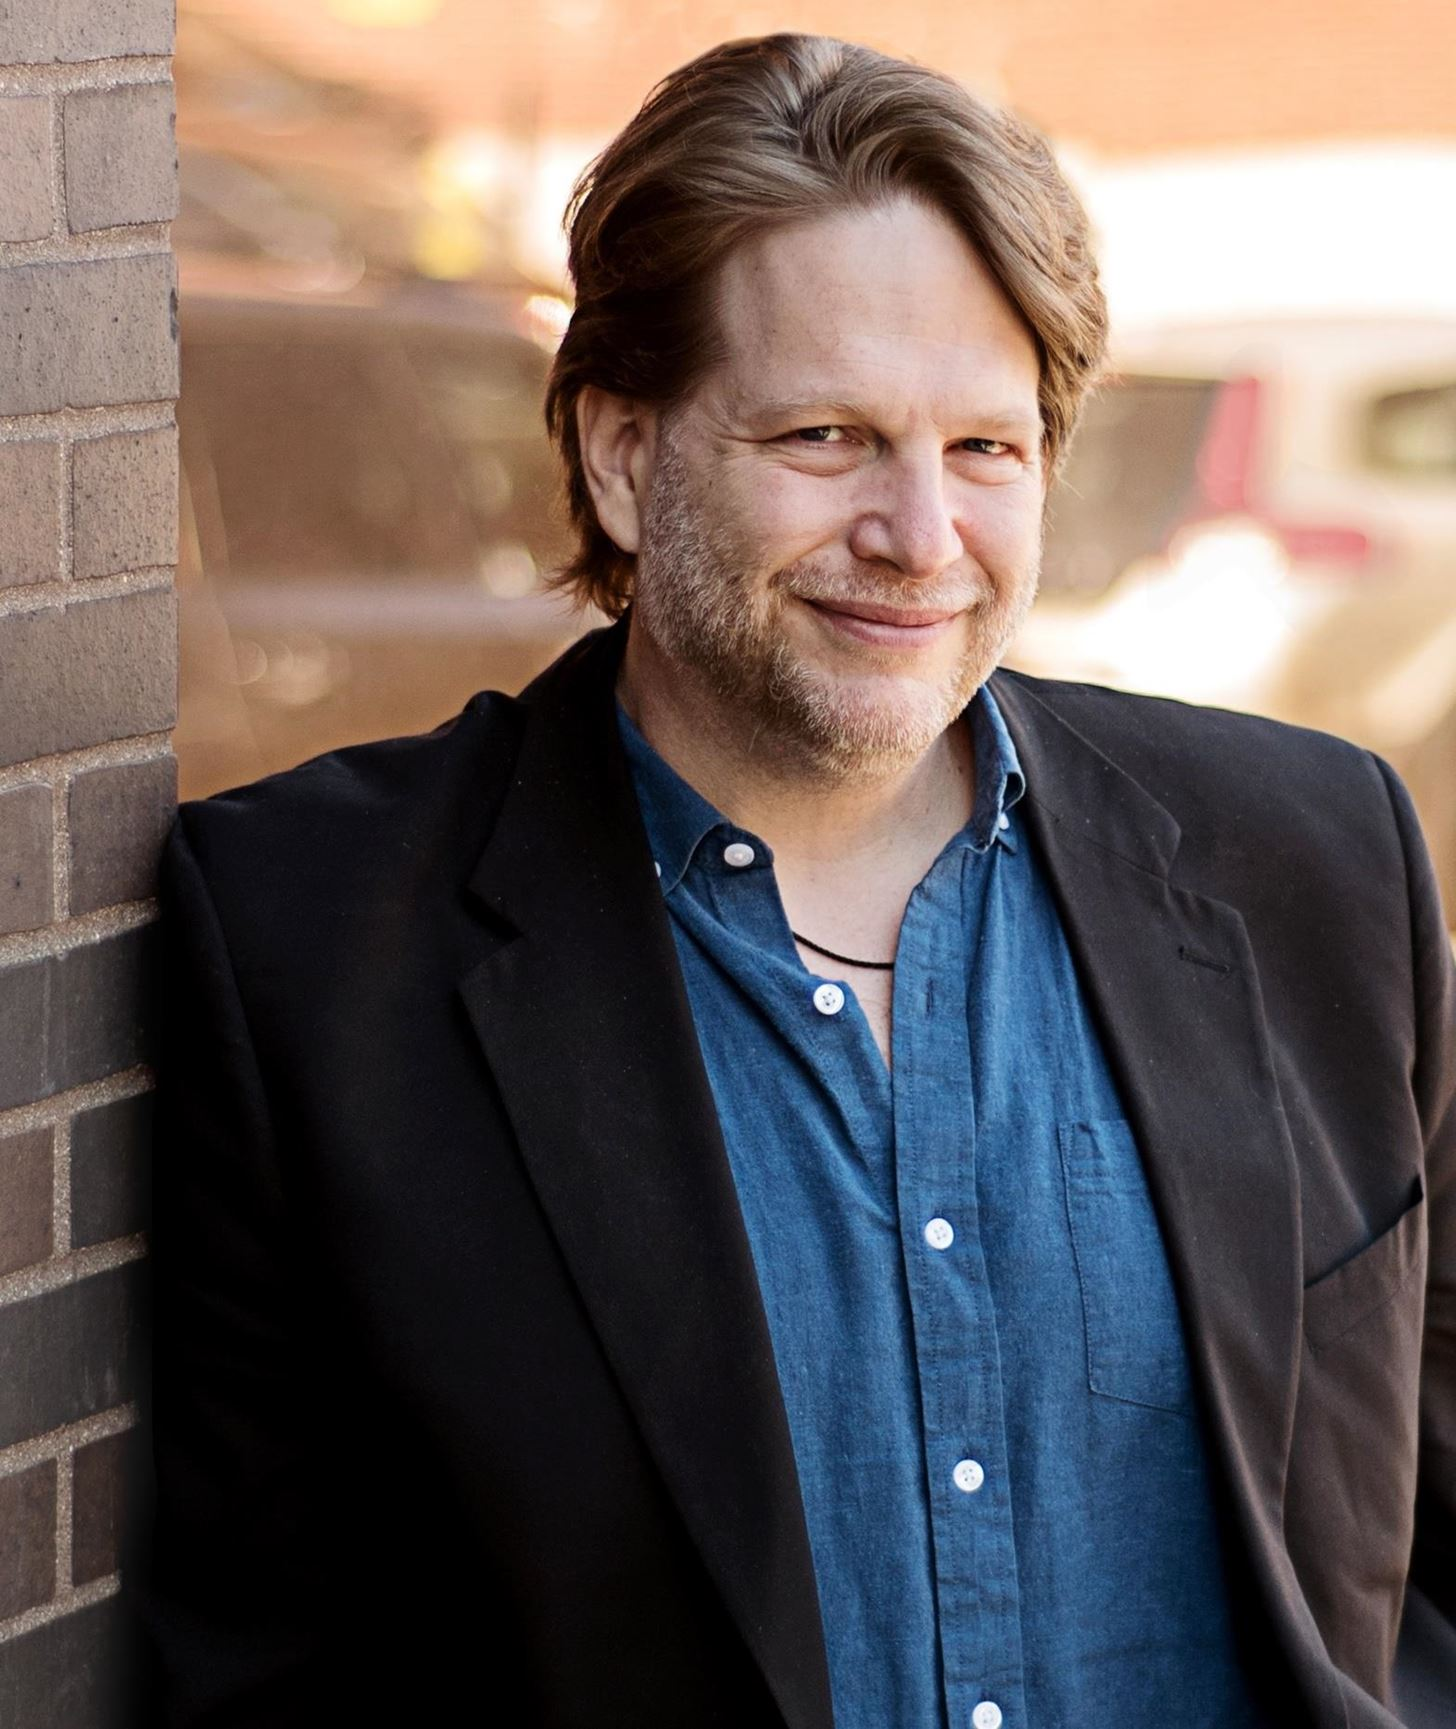 Social Media All-Star Chris Brogan Shares His Top Tips on Mastering Mobile